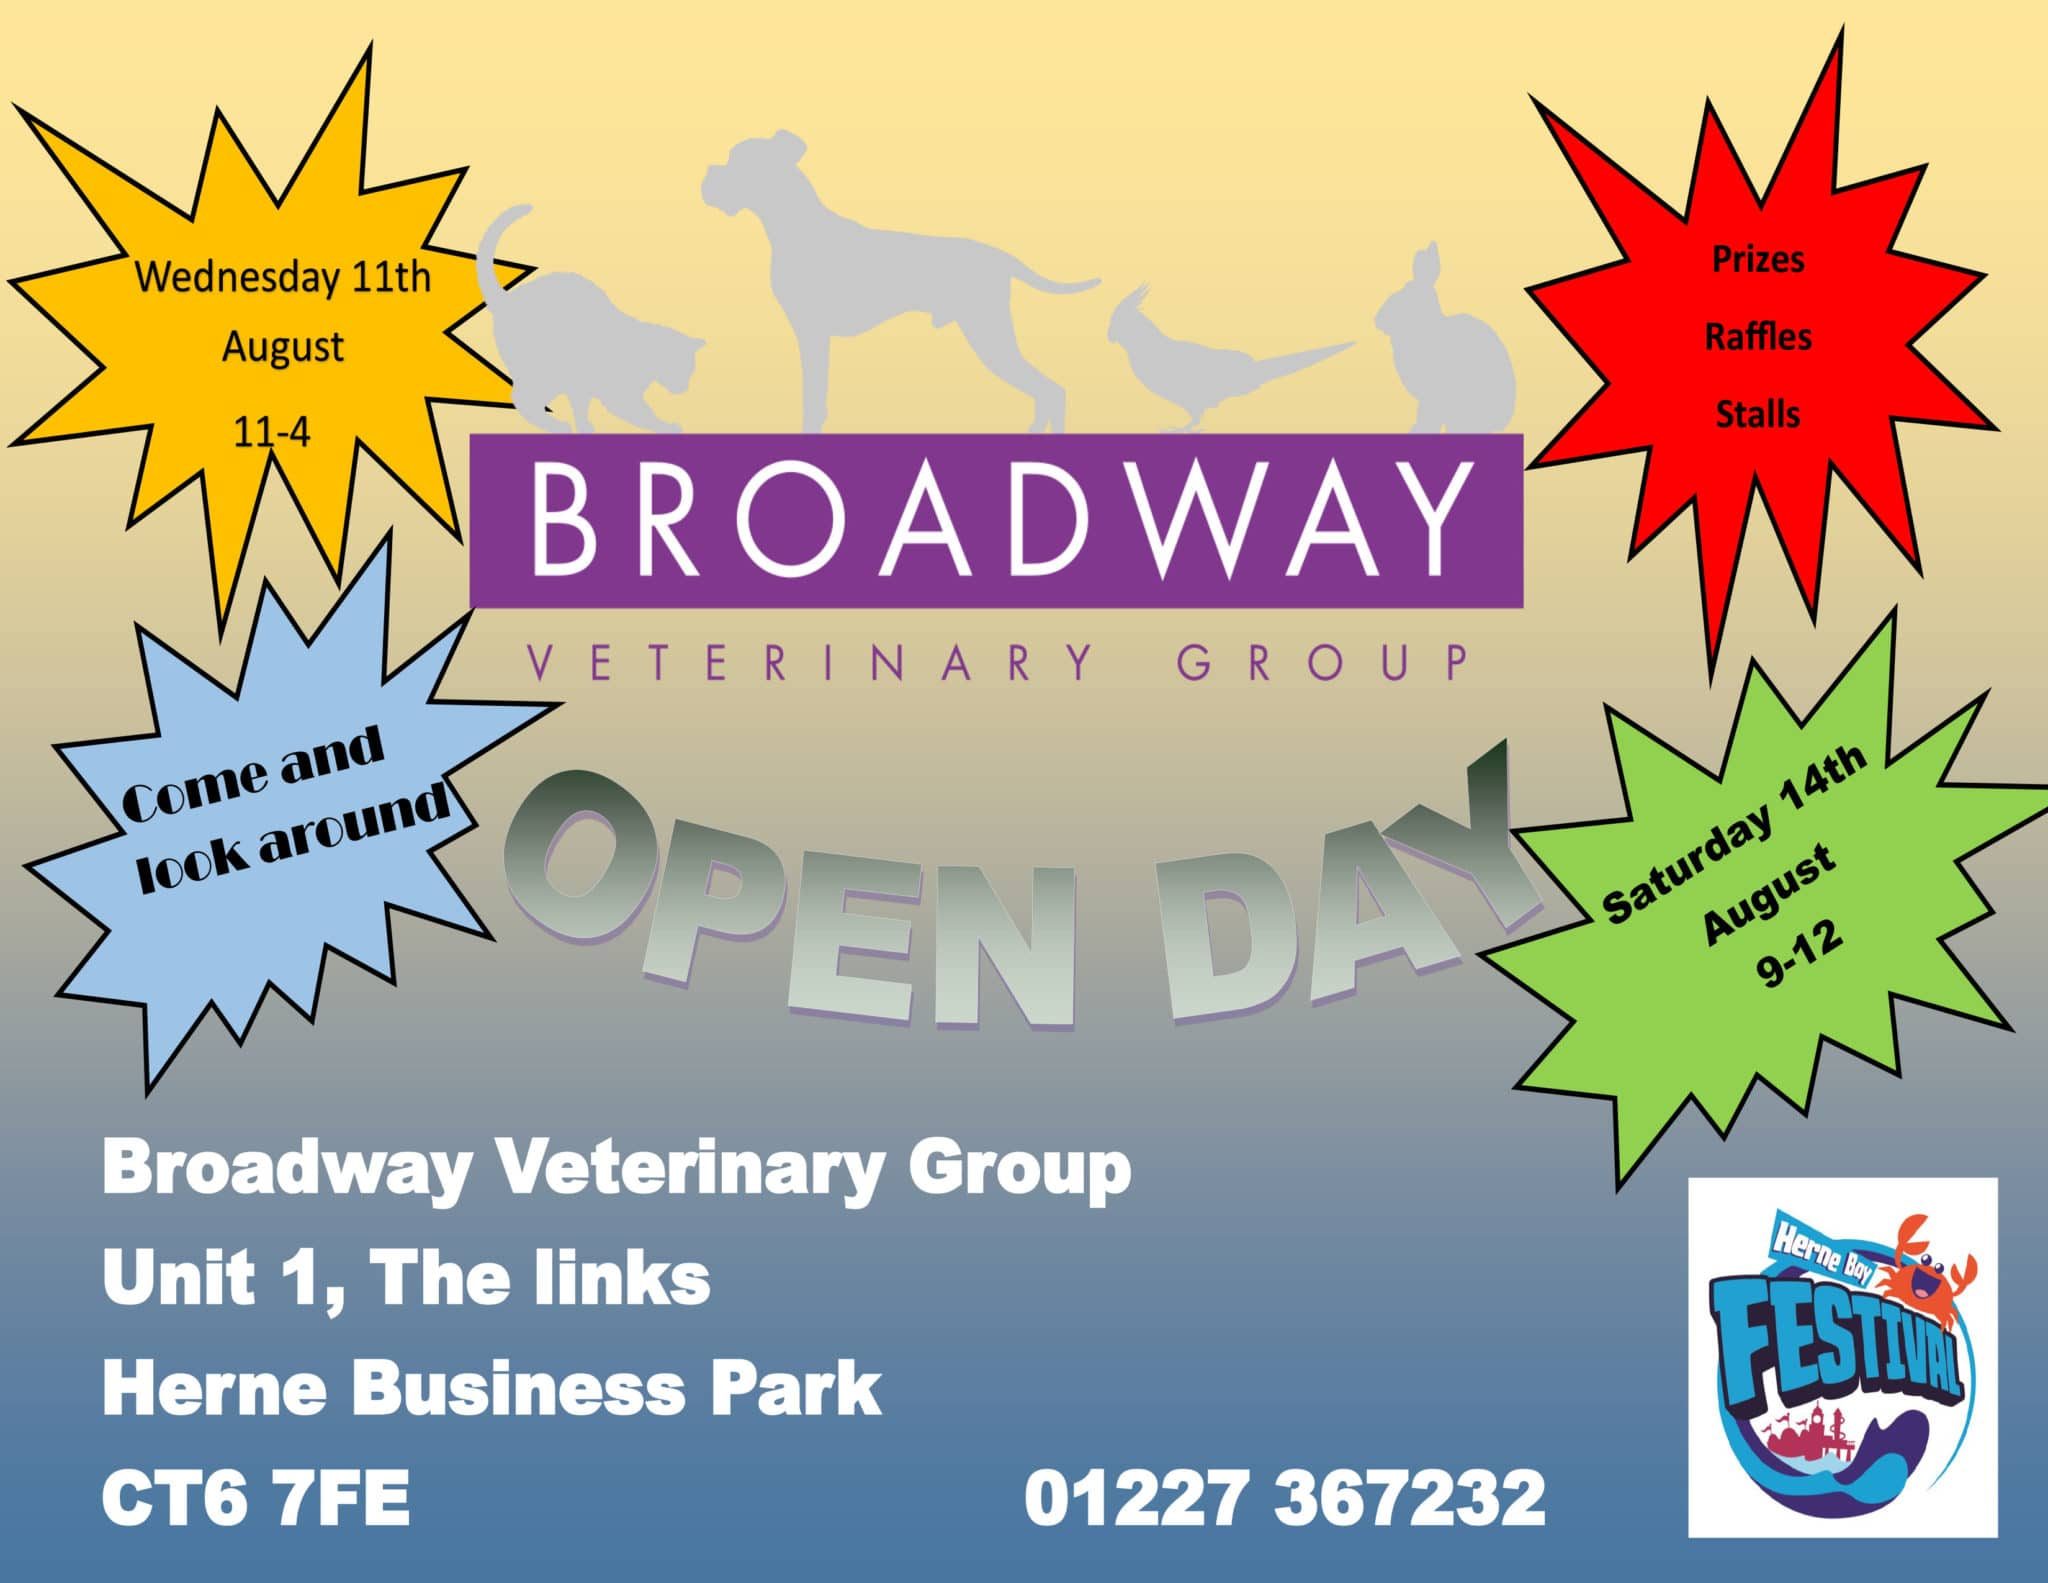 Broadway Veterinary Group Open Day